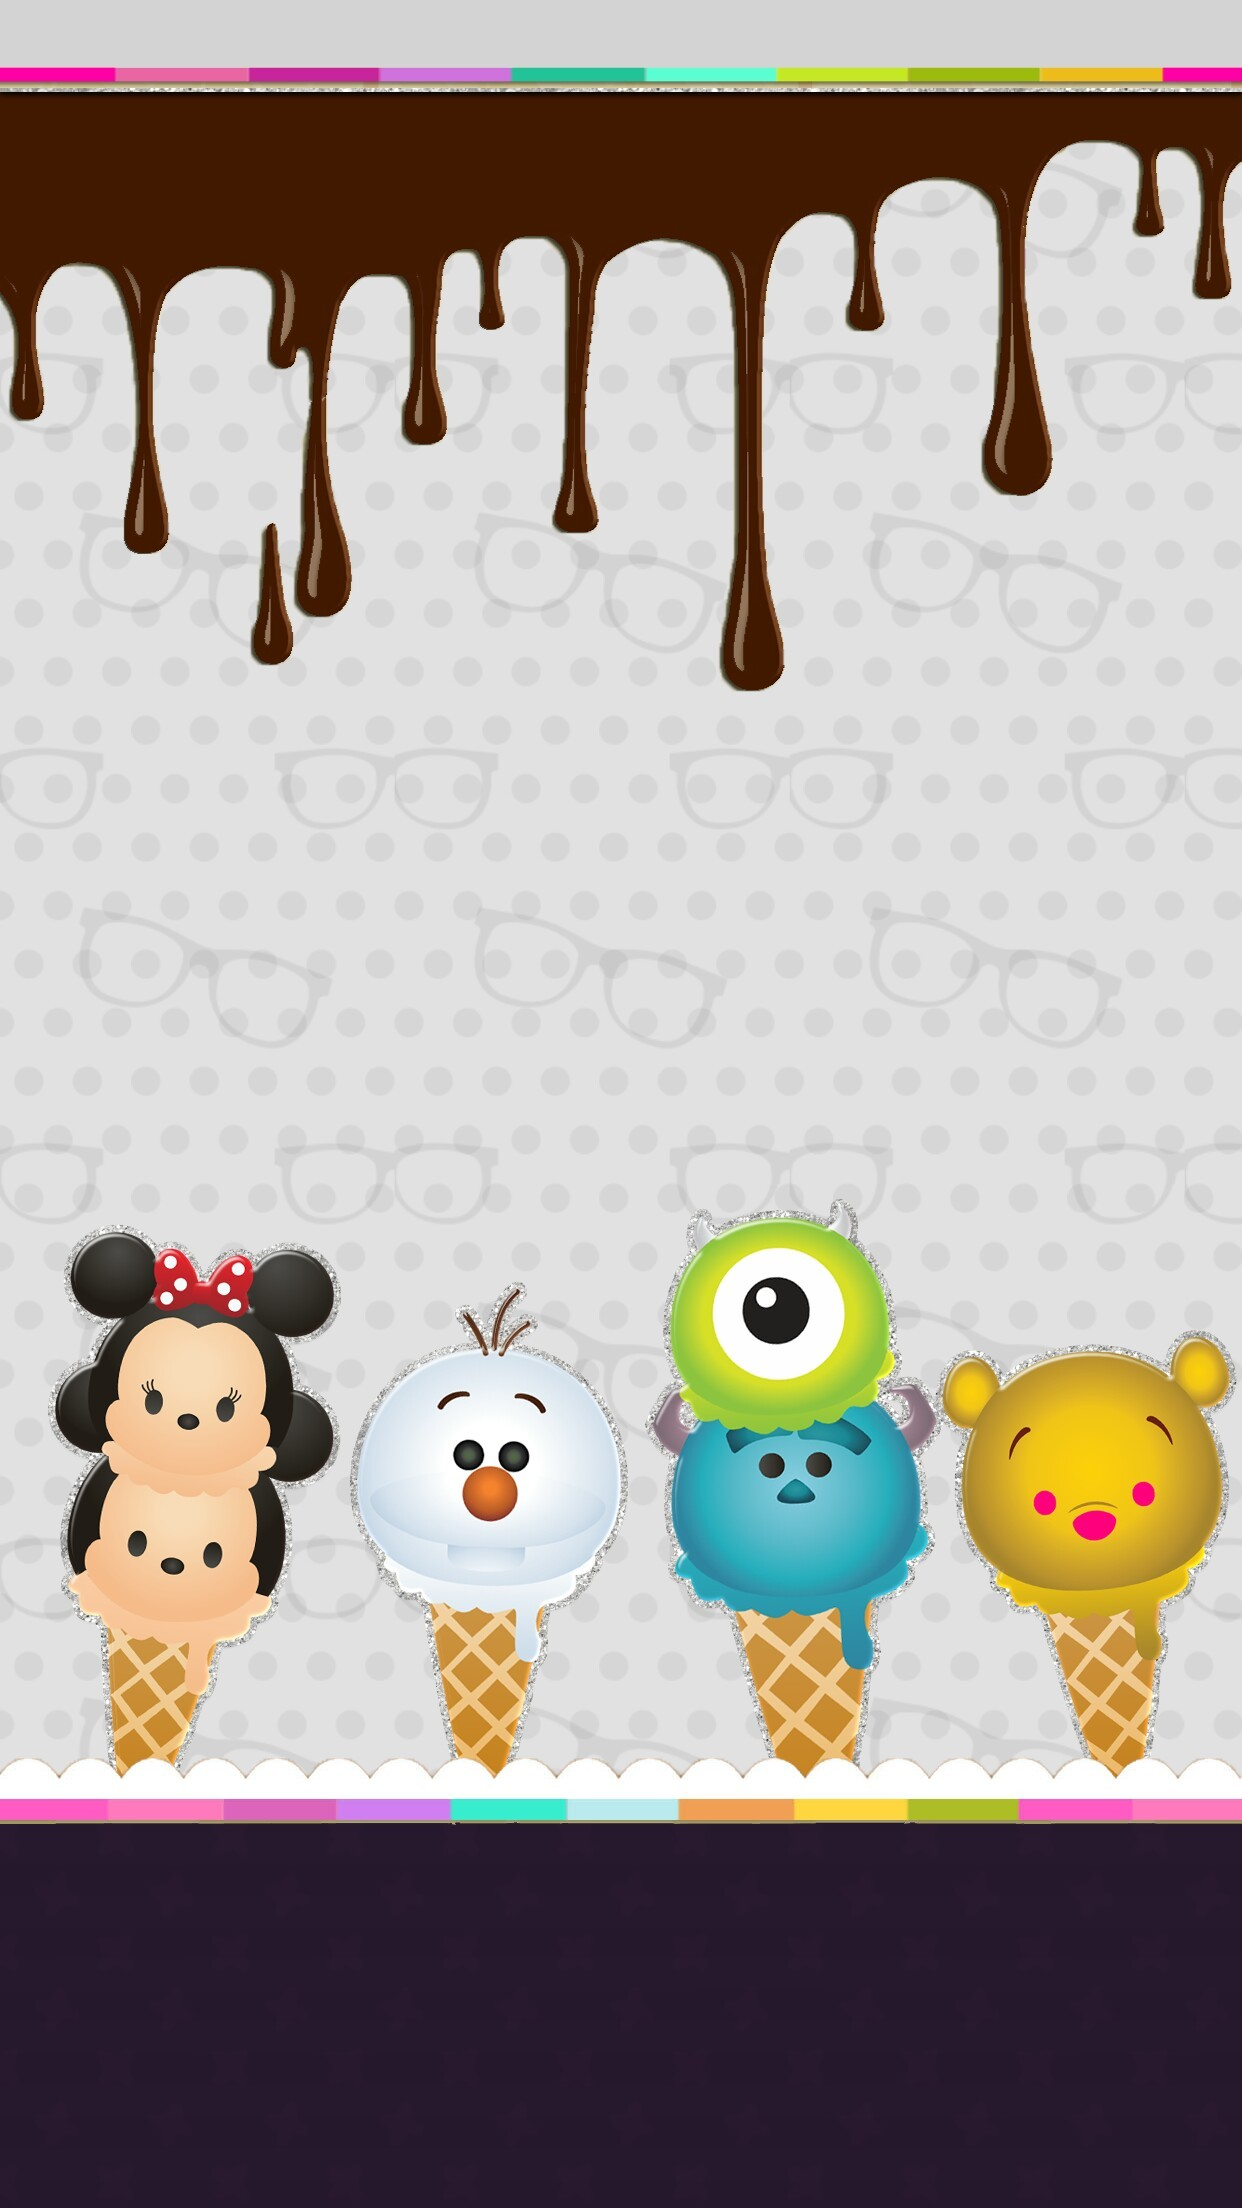 Iphone 2, Disneyland, Mickey Mouse, Hello Kitty, Kawaii, Walls, Pictures,  Screen, Funds